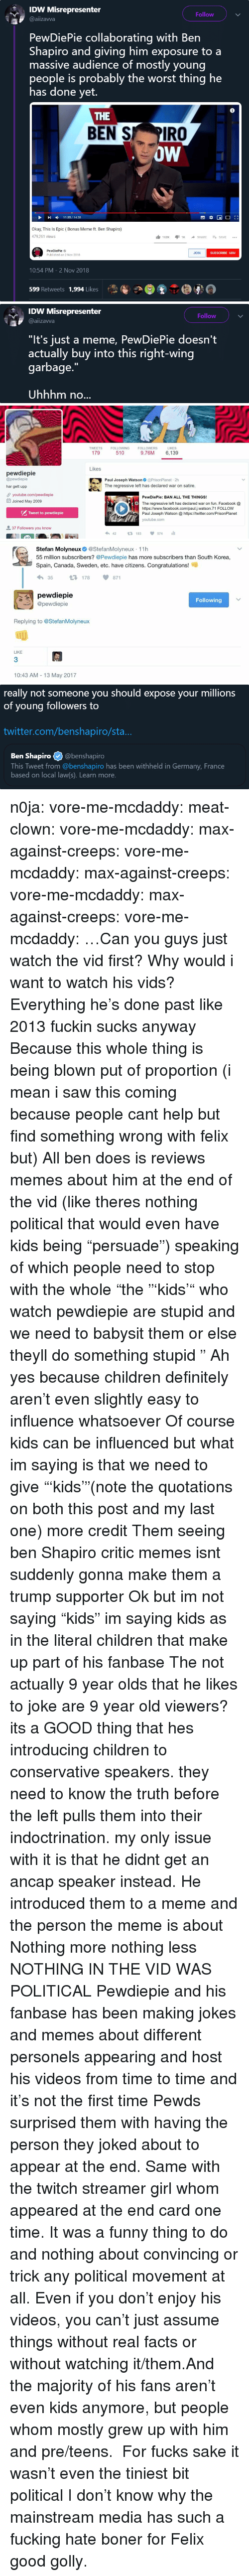 "Boner, Children, and Definitely: IDW Misrepresenter  Follow  @aiizavva  PewDiePie collaborating with Ben  Shapiro and giving him exposure to a  massive audience of mostly young  people is probably the worst thing he  has done yet.  THE  BEN S PIRO  oW  ,  1135 / 14:28  Okay, This Is Epic (Bonus Meme ft. Ben Shapiro)  479,261 views  162K  SHARESAVE  PewDiePie  Published on 2 Now 2018  JOIN  SUBSCRIBE 68M  10:54 PM-2 Nov 2018  599 Retweets 1,994 Likes  备  @   IDW Misrepresenter  Follow  @aiizavwa  ""It's just a meme, PewDiePie doesn't  actually buy into this right-wing  garbage.""  Uhhhm no...   TWEETS  FOLLOWING  FOLLOWERS  LIKES  179  510  9.76M 6,139  Likes  pewdiepie  @pewdiepie  har gett upp  9 youtube.com/pewdiepie  Paul Joseph Watson@PrisonPlanet 2h  The regressive left has declared war on satire.  PewDiePie: BAN ALL THE THINGS!  The regressive left has declared war on fun. Facebook@  https://www.facebook.com/paul.j.watson.71 FOLLOW  Joined May 2009  Tweet to pewdiepie  Paul Joseph Watson  https://twitter.com/PrisonPlanet  youtube.com  37 Followers you know  42 183 574   Stefan Molyneux @StefanMolyneux 11h  55 million subscribers? @Pewdiepie has more subscribers than South Korea,  Spain, Canada, Sweden, etc. have citizens. Congratulations!  35178 871  pewdiepie  @pewdiepie  Following  Replying to @StefanMolyneux  LIKE  3  10:43 AM 13 May 2017   really not someone you should expose your millions  of young followers to  twitter.com/benshapiro/sta  Ben Shapiro@benshapiro  This Tweet from @benshapiro has been withheld in Germany, France  based on local law(s). Learn more. n0ja: vore-me-mcdaddy:  meat-clown:  vore-me-mcdaddy:  max-against-creeps:   vore-me-mcdaddy:   max-against-creeps:  vore-me-mcdaddy:   max-against-creeps:  vore-me-mcdaddy:  …Can you guys just watch the vid first?  Why would i want to watch his vids? Everything he's done past like 2013 fuckin sucks anyway  Because this whole thing is being blown put of proportion (i mean i saw this coming because people cant help but find something wrong with felix but)  All ben does is reviews memes about him at the end of the vid (like theres nothing political that would even have kids being ""persuade"") speaking of which people need to stop with the whole ""the ""'kids'"" who watch pewdiepie are stupid and we need to babysit them or else theyll do something stupid ""   Ah yes because children definitely aren't even slightly easy to influence whatsoever  Of course kids can be influenced but what im saying is that we need to give ""'kids'""(note the quotations on both this post and my last one) more credit Them seeing ben Shapiro critic memes isnt suddenly gonna make them a trump supporter    Ok but im not saying ""kids"" im saying kids as in the literal children that make up part of his fanbase   The not actually 9 year olds that he likes to joke are 9 year old viewers?  its a GOOD thing that hes introducing children to conservative speakers. they need to know the truth before the left pulls them into their indoctrination. my only issue with it is that he didnt get an ancap speaker instead.  He introduced them to a meme and the person the meme is about Nothing more nothing less NOTHING IN THE VID WAS POLITICAL  Pewdiepie and his fanbase has been making jokes and memes about different personels appearing and host his videos from time to time and it's not the first time Pewds surprised them with having the person they joked about to appear at the end. Same with the twitch streamer girl whom appeared at the end card one time. It was a funny thing to do and nothing about convincing or trick any political movement at all. Even if you don't enjoy his videos, you can't just assume things without real facts or without watching it/them.And the majority of his fans aren't even kids anymore, but people whom mostly grew up with him and pre/teens.    For fucks sake it wasn't even the tiniest bit political I don't know why the mainstream media has such a fucking hate boner for Felix good golly."